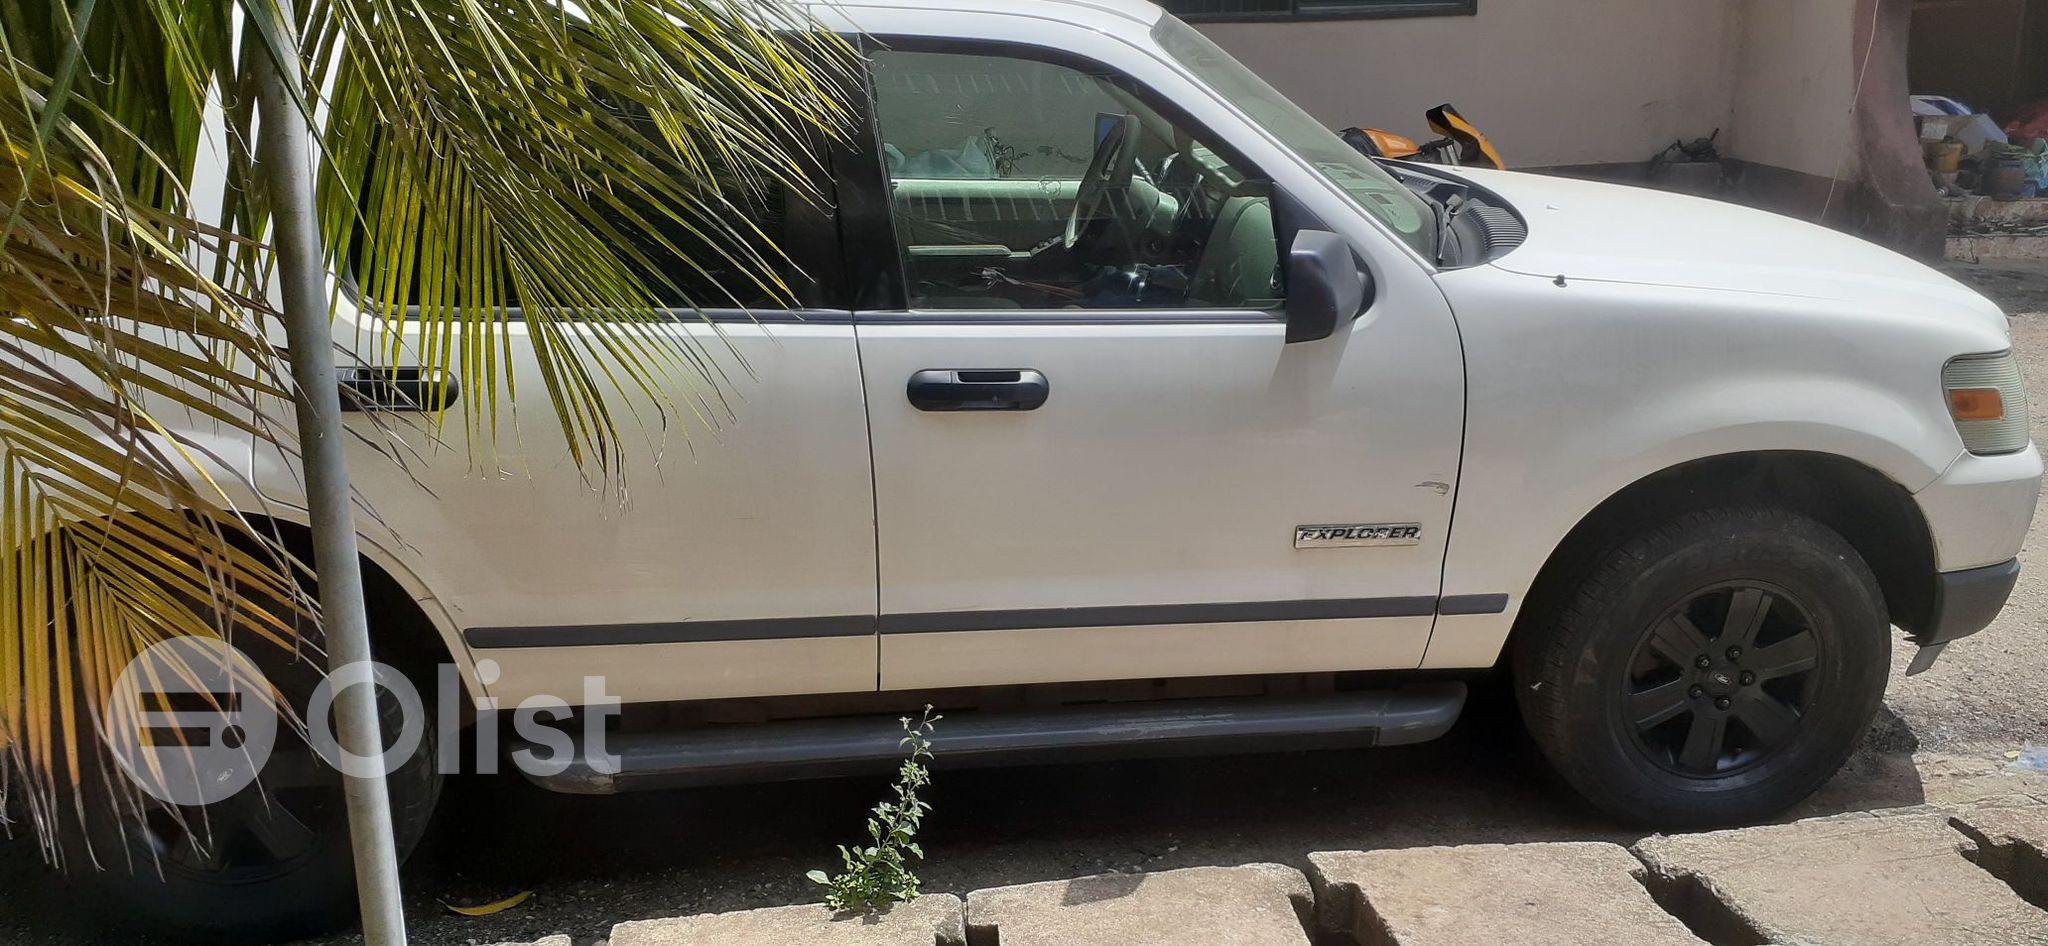 2004 Ford Explorer White Automatic Foreign Used